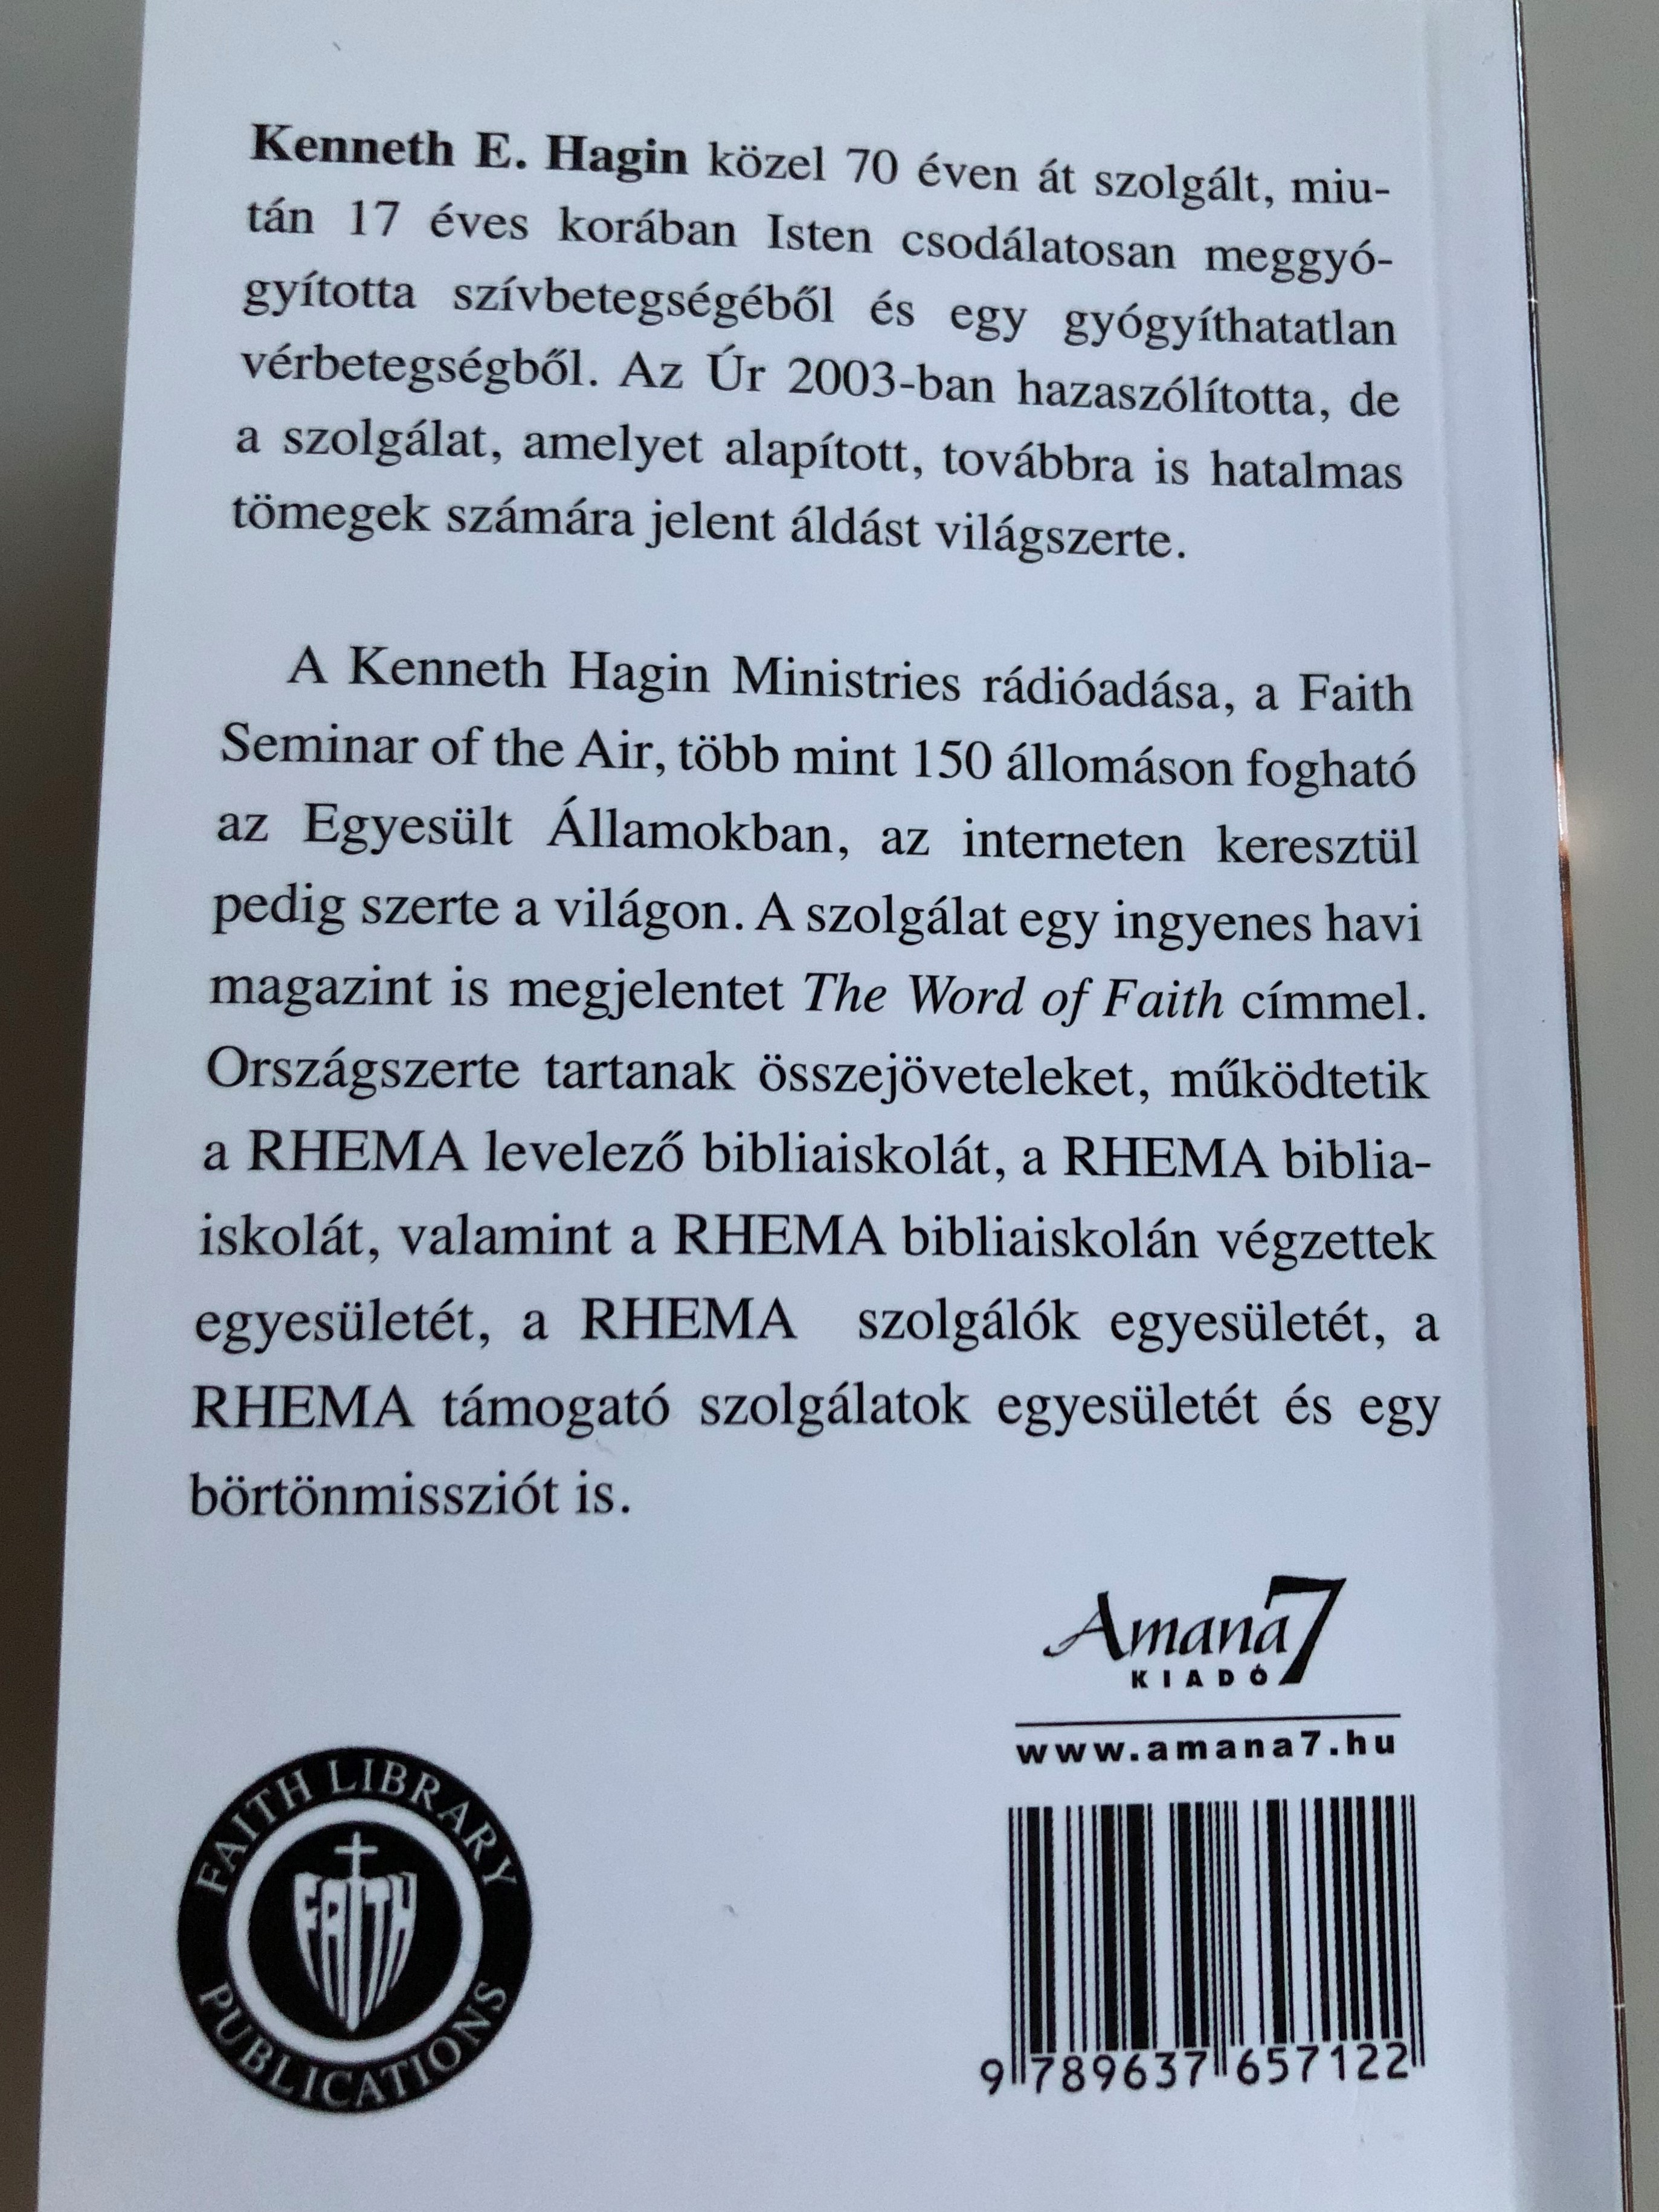 hogyan-lj-istent-l-kapott-jogaiddal-by-kenneth-e.-hagin-hungarian-edition-of-plead-your-case-6-.jpg